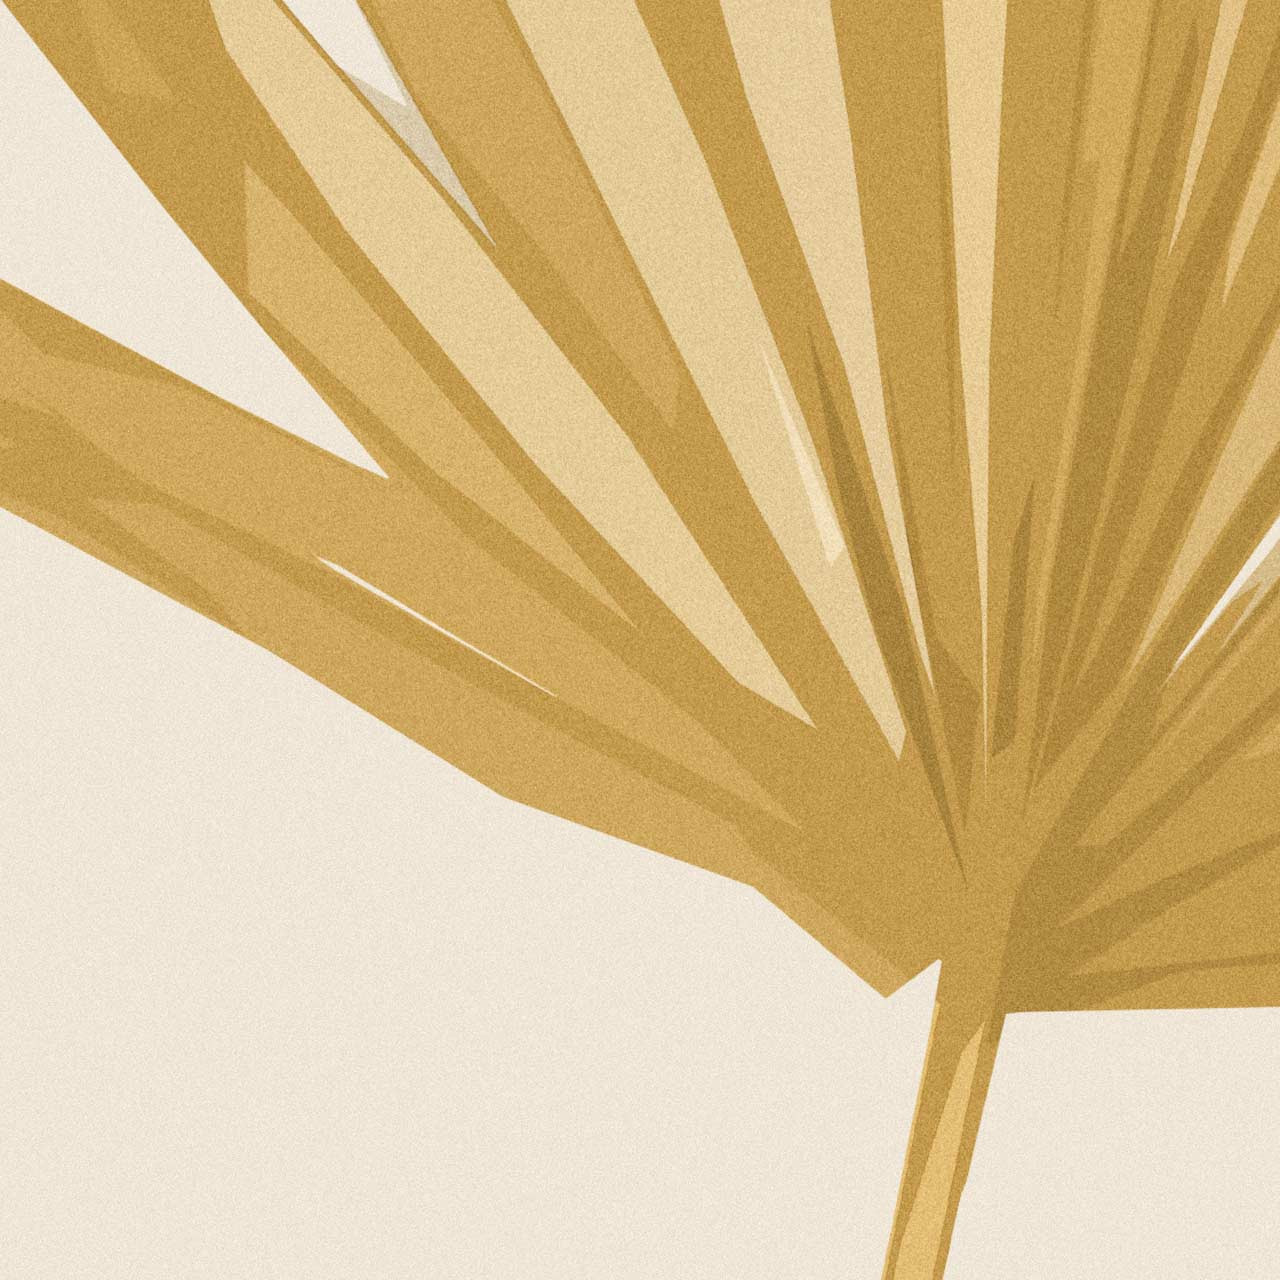 Close-up of 'Sun Palm III' in Ochre Abstract Leaf Art Print from The Printed Home